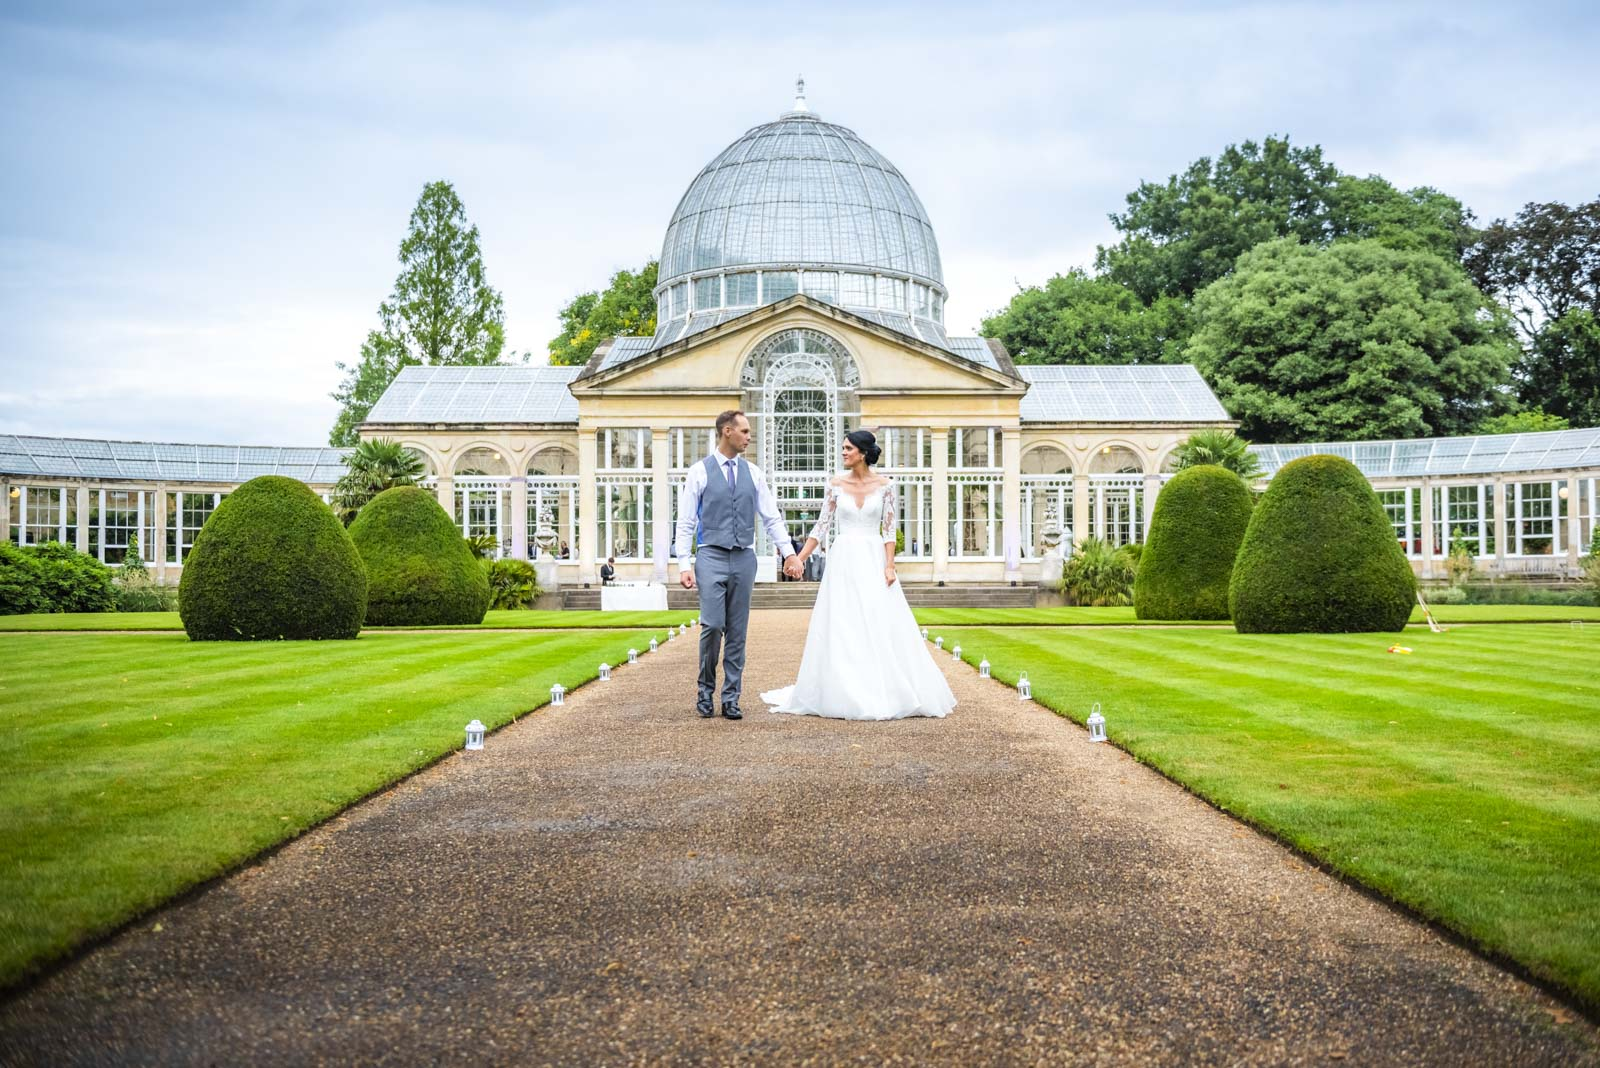 syon park wedding photography by londonwedding photographer jp and ej 466 of 620